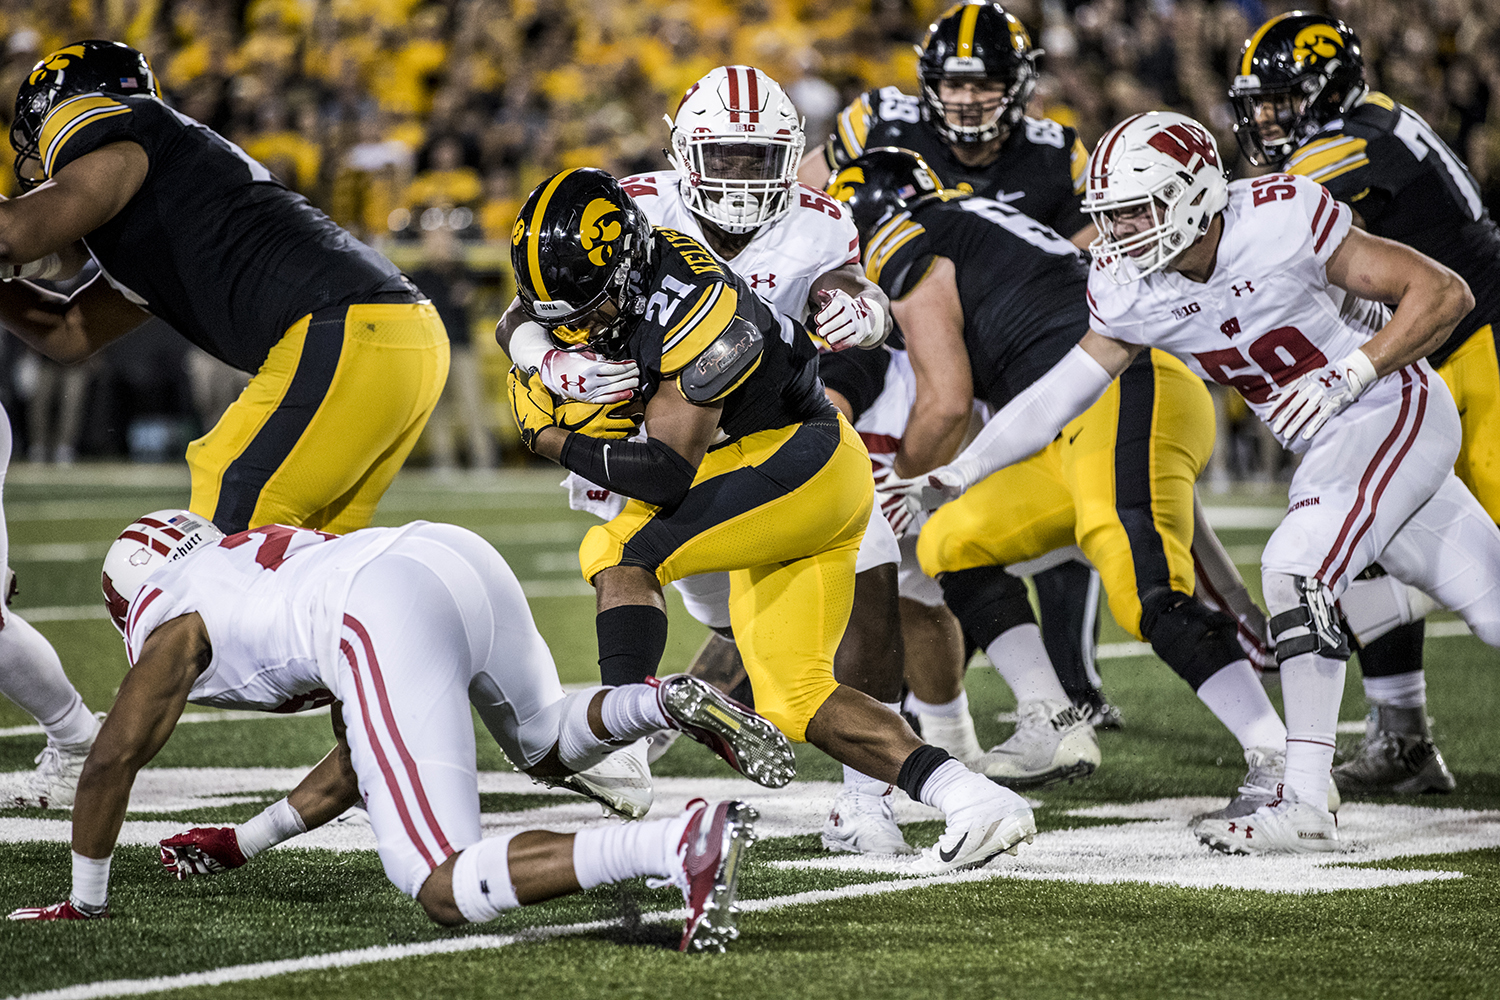 Iowa running back Ivory Kelly-Martin carries the ball during Iowa's game against Wisconsin at Kinnick Stadium on Saturday, Sept. 22, 2018. The Badgers defeated the Hawkeyes 28-17.